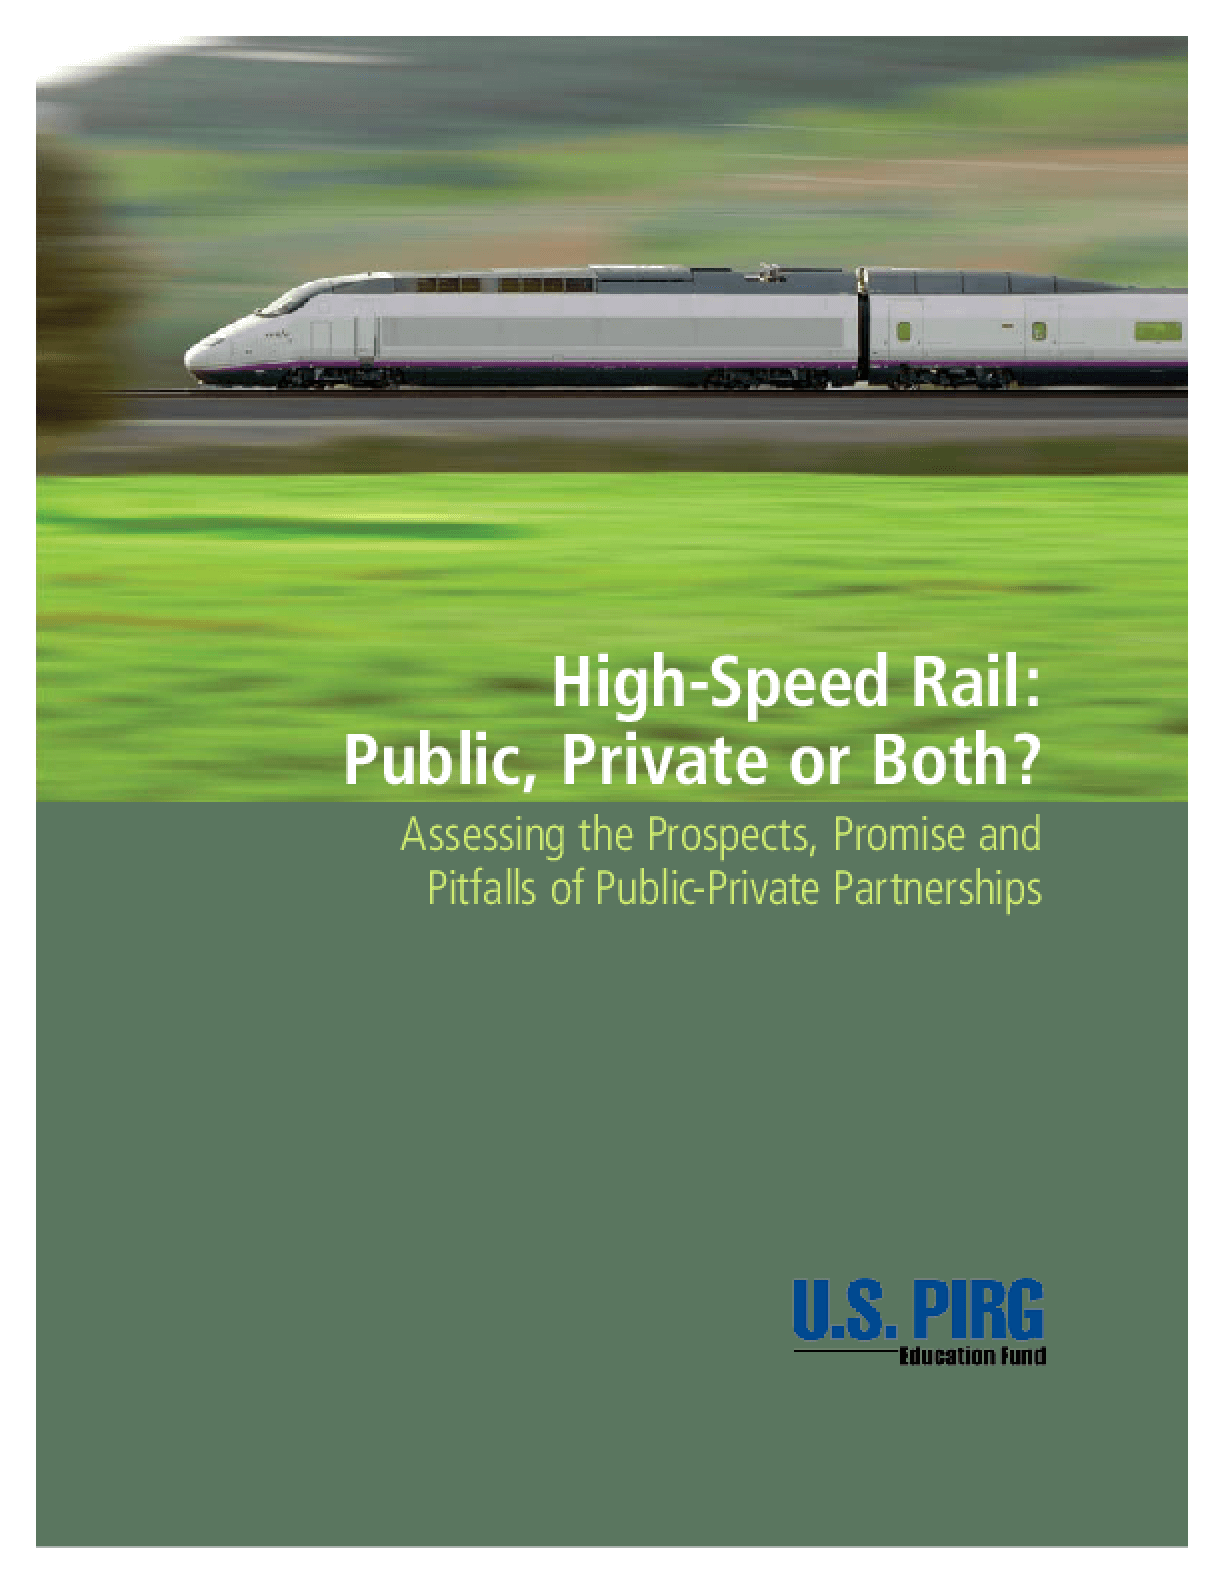 High-Speed Rail: Public, Private or Both? Assessing the Prospects, Promise and Pitfalls of Public-Private Partnerships